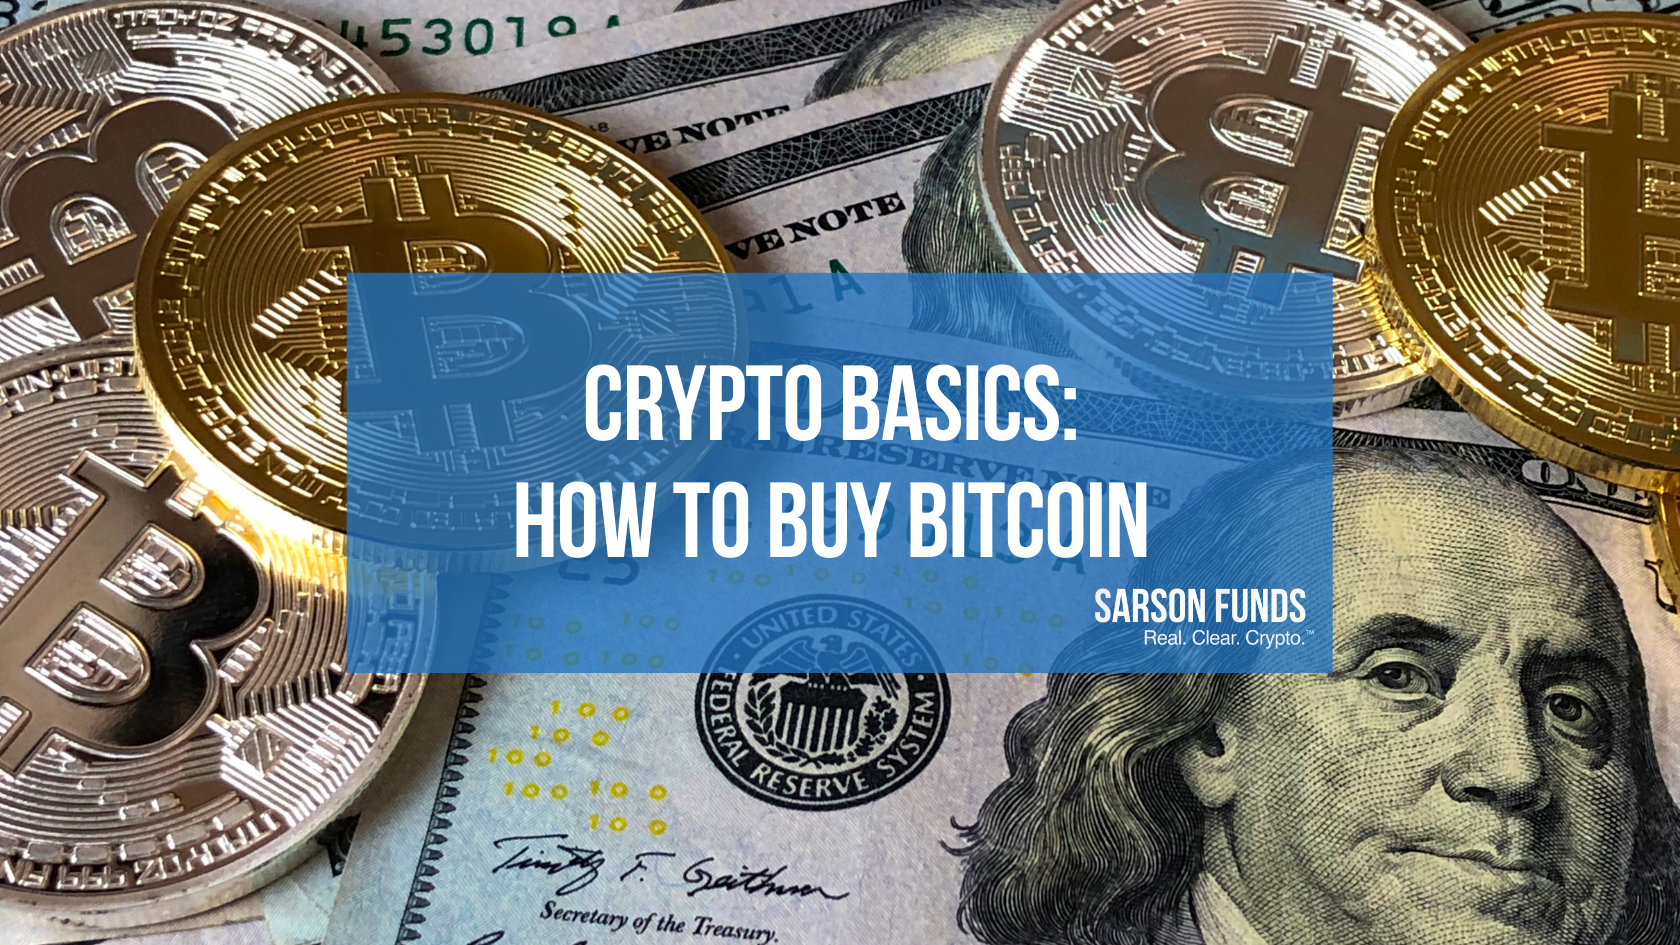 Sarson Funds: How to Invest in Bitcoin - Cryptocurrency Financial Advisor